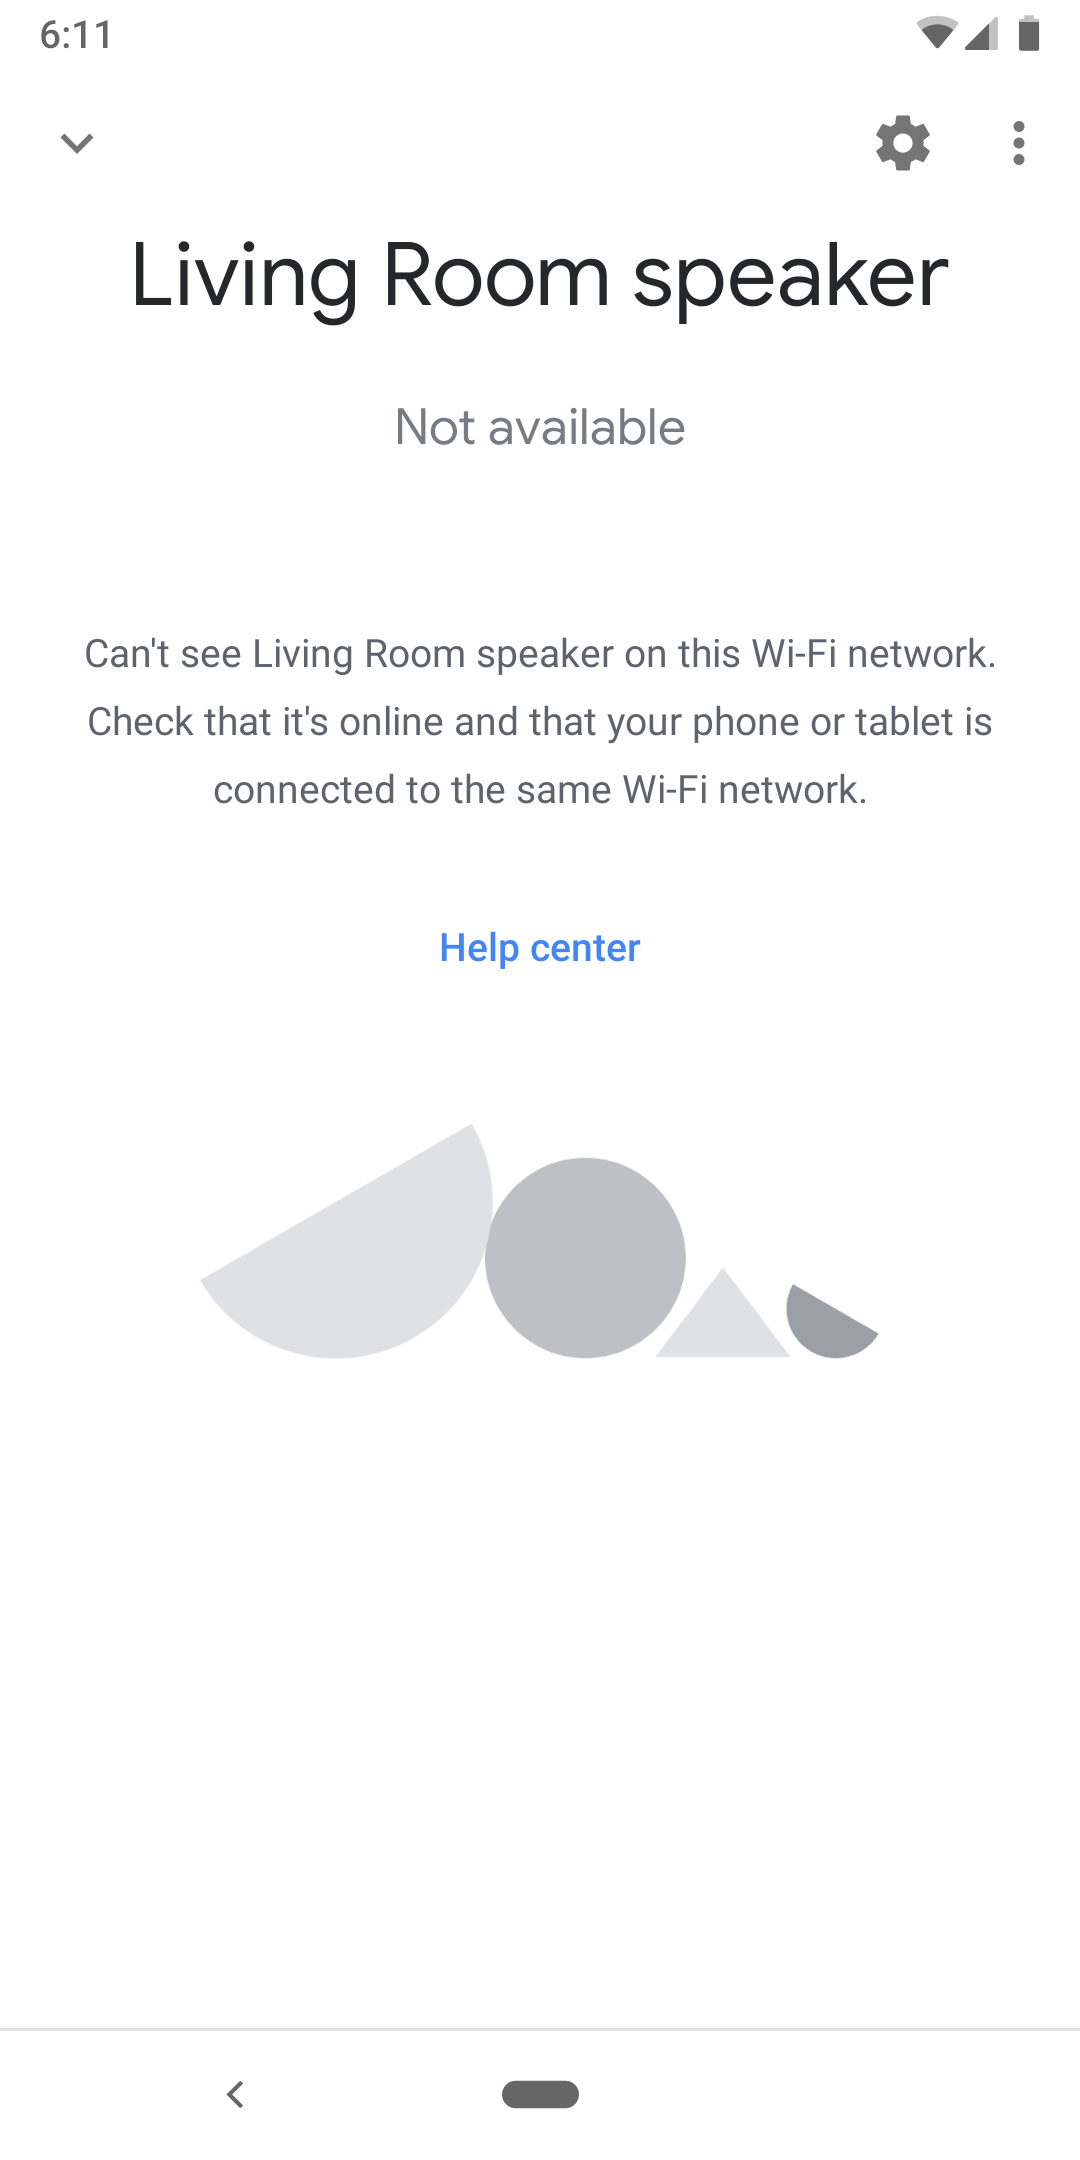 Both Of My Google Home Devices Say They Are  U0026 39 Not Available